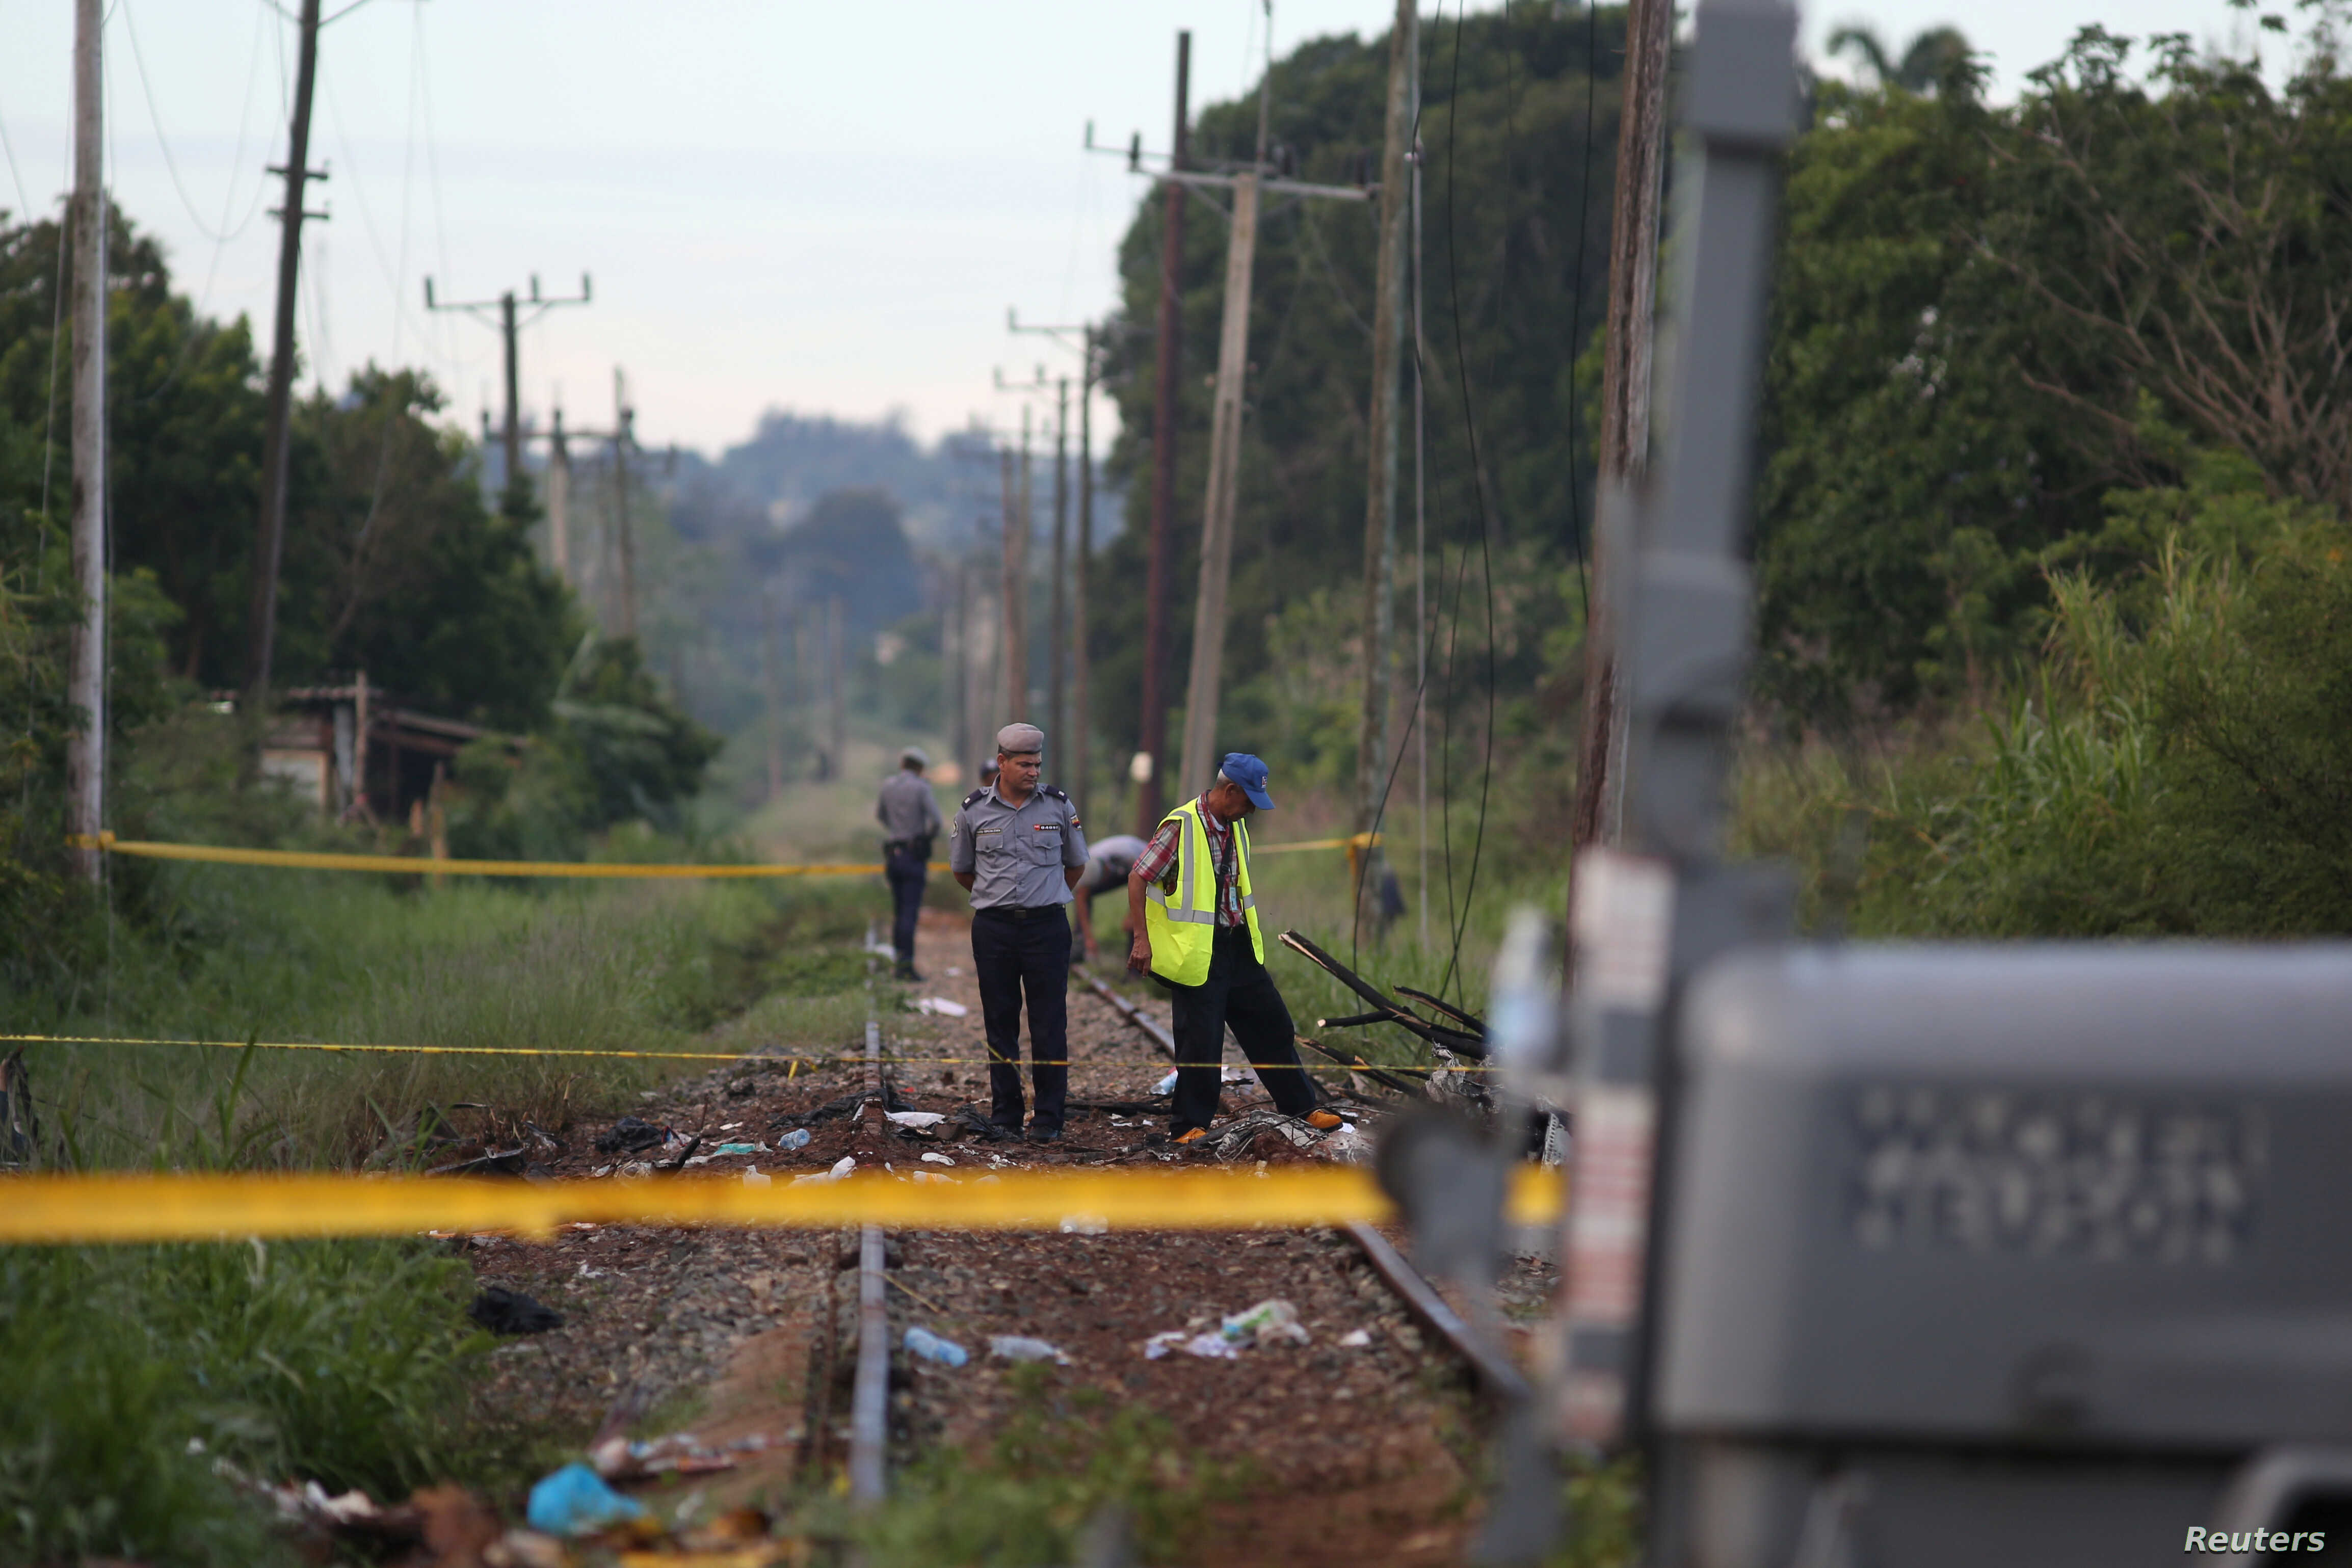 Police officers stand at the site where a Boeing 737 plane crashed after taking off from Havana's main airport the previous day, in the agricultural area of Boyeros, Cuba, May 19, 2018.